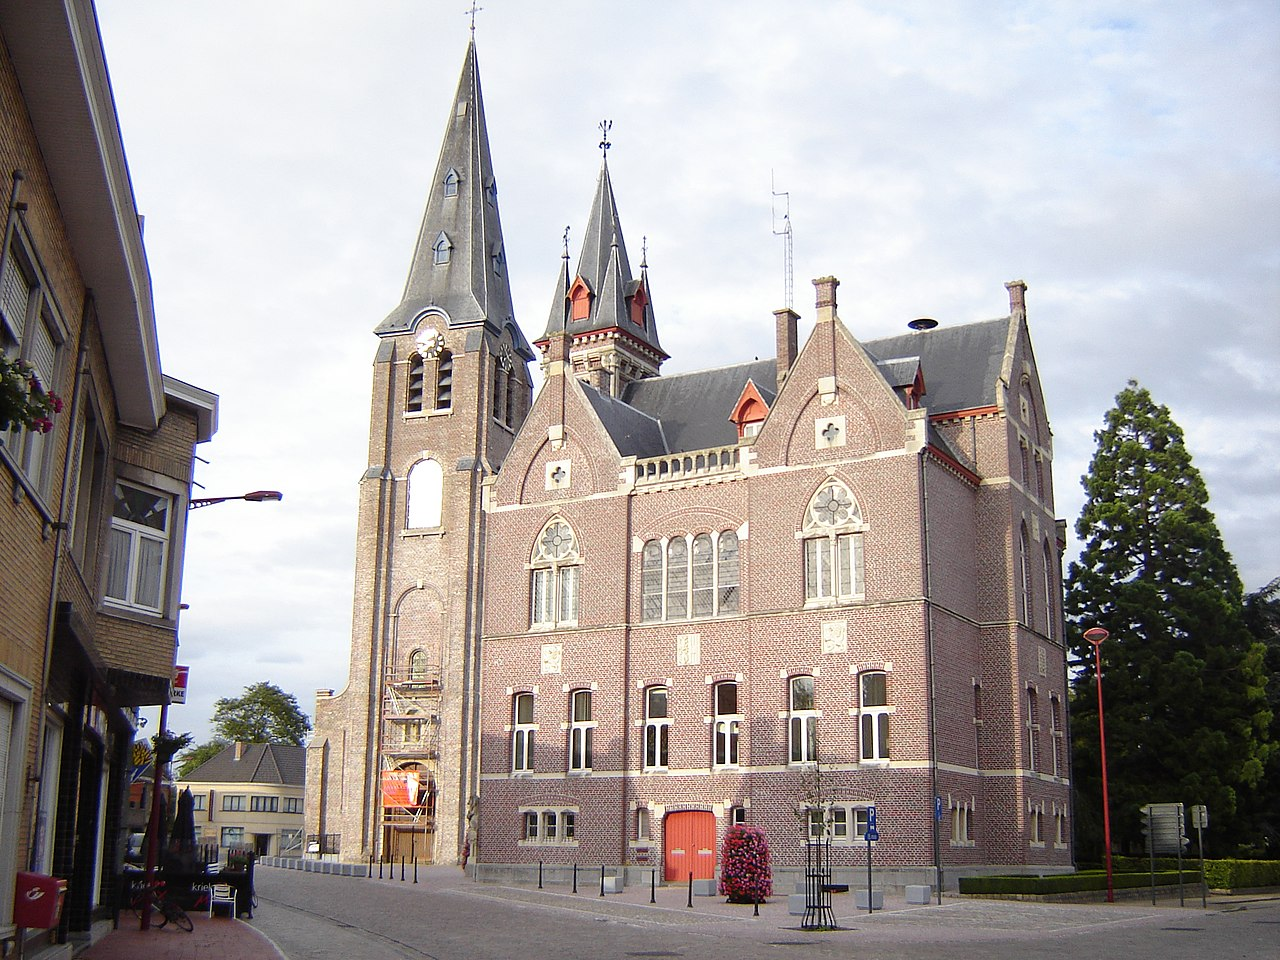 Village centre, with town hall and church of Our Lady